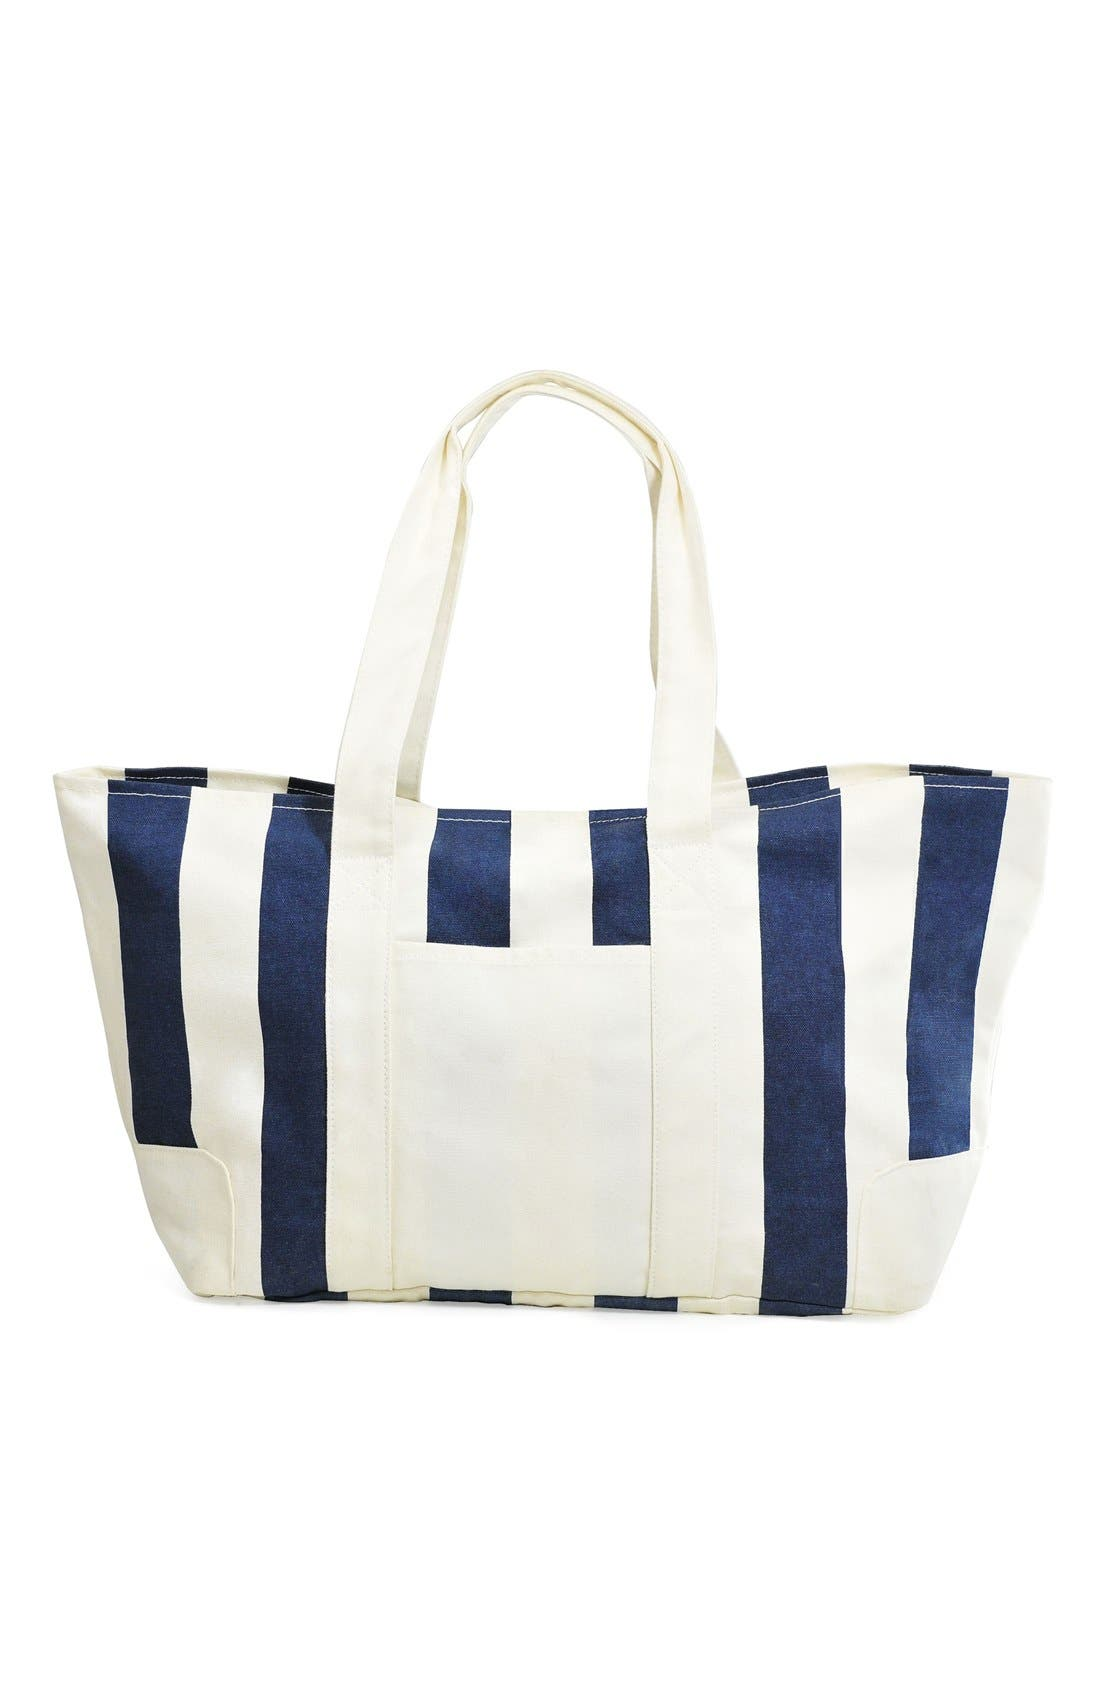 Monogram Stripe Canvas Tote,                             Main thumbnail 1, color,                             410